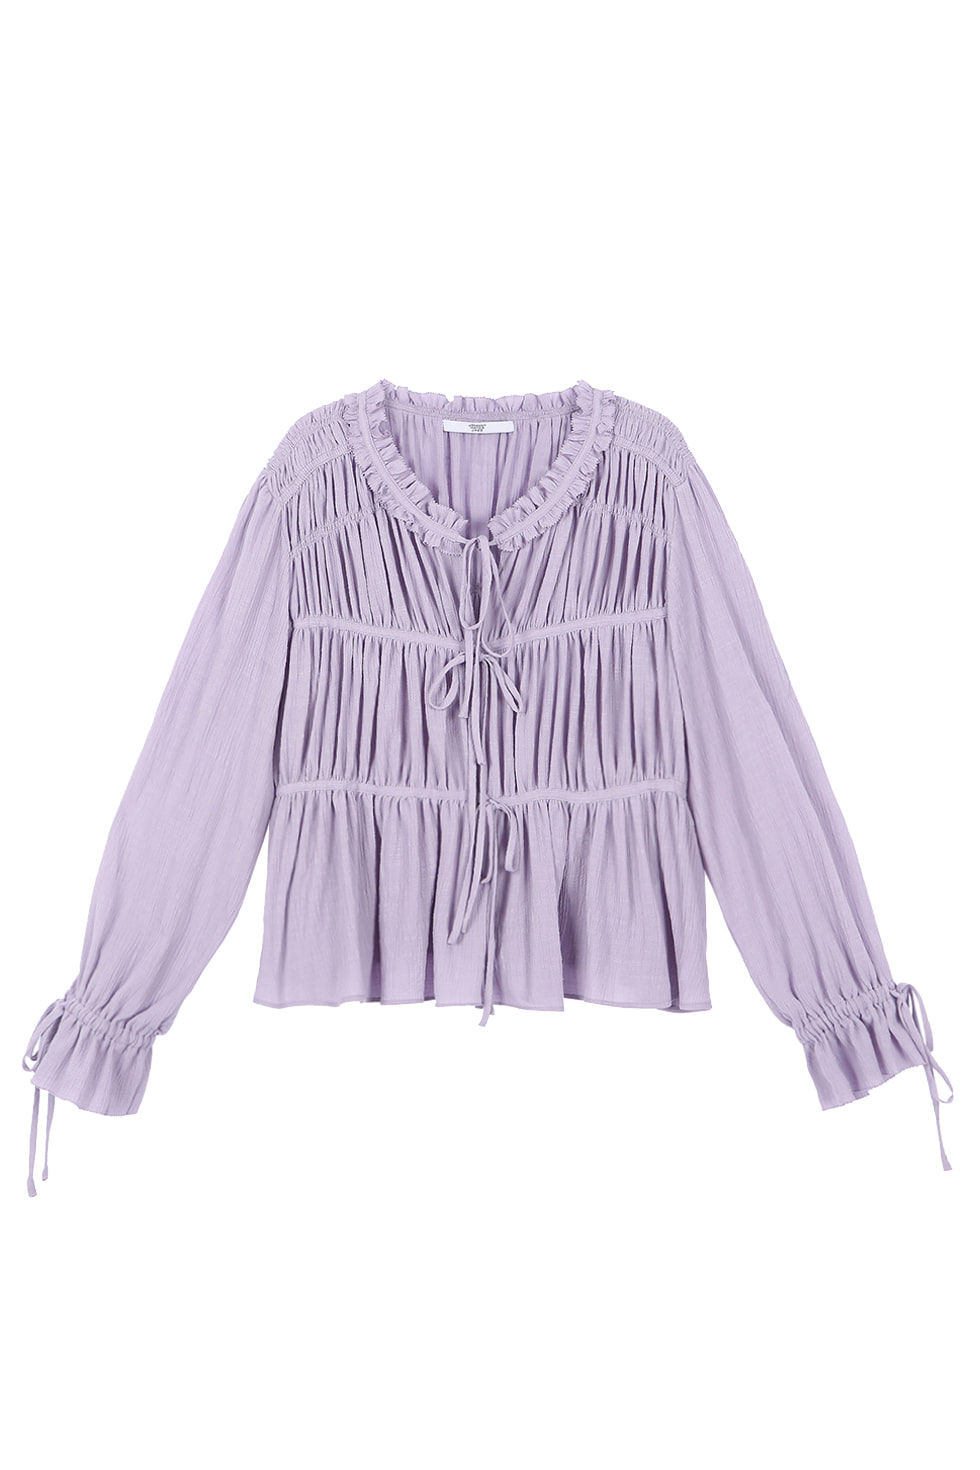 COTTON SHIRRING BLOUSE - PURPLE